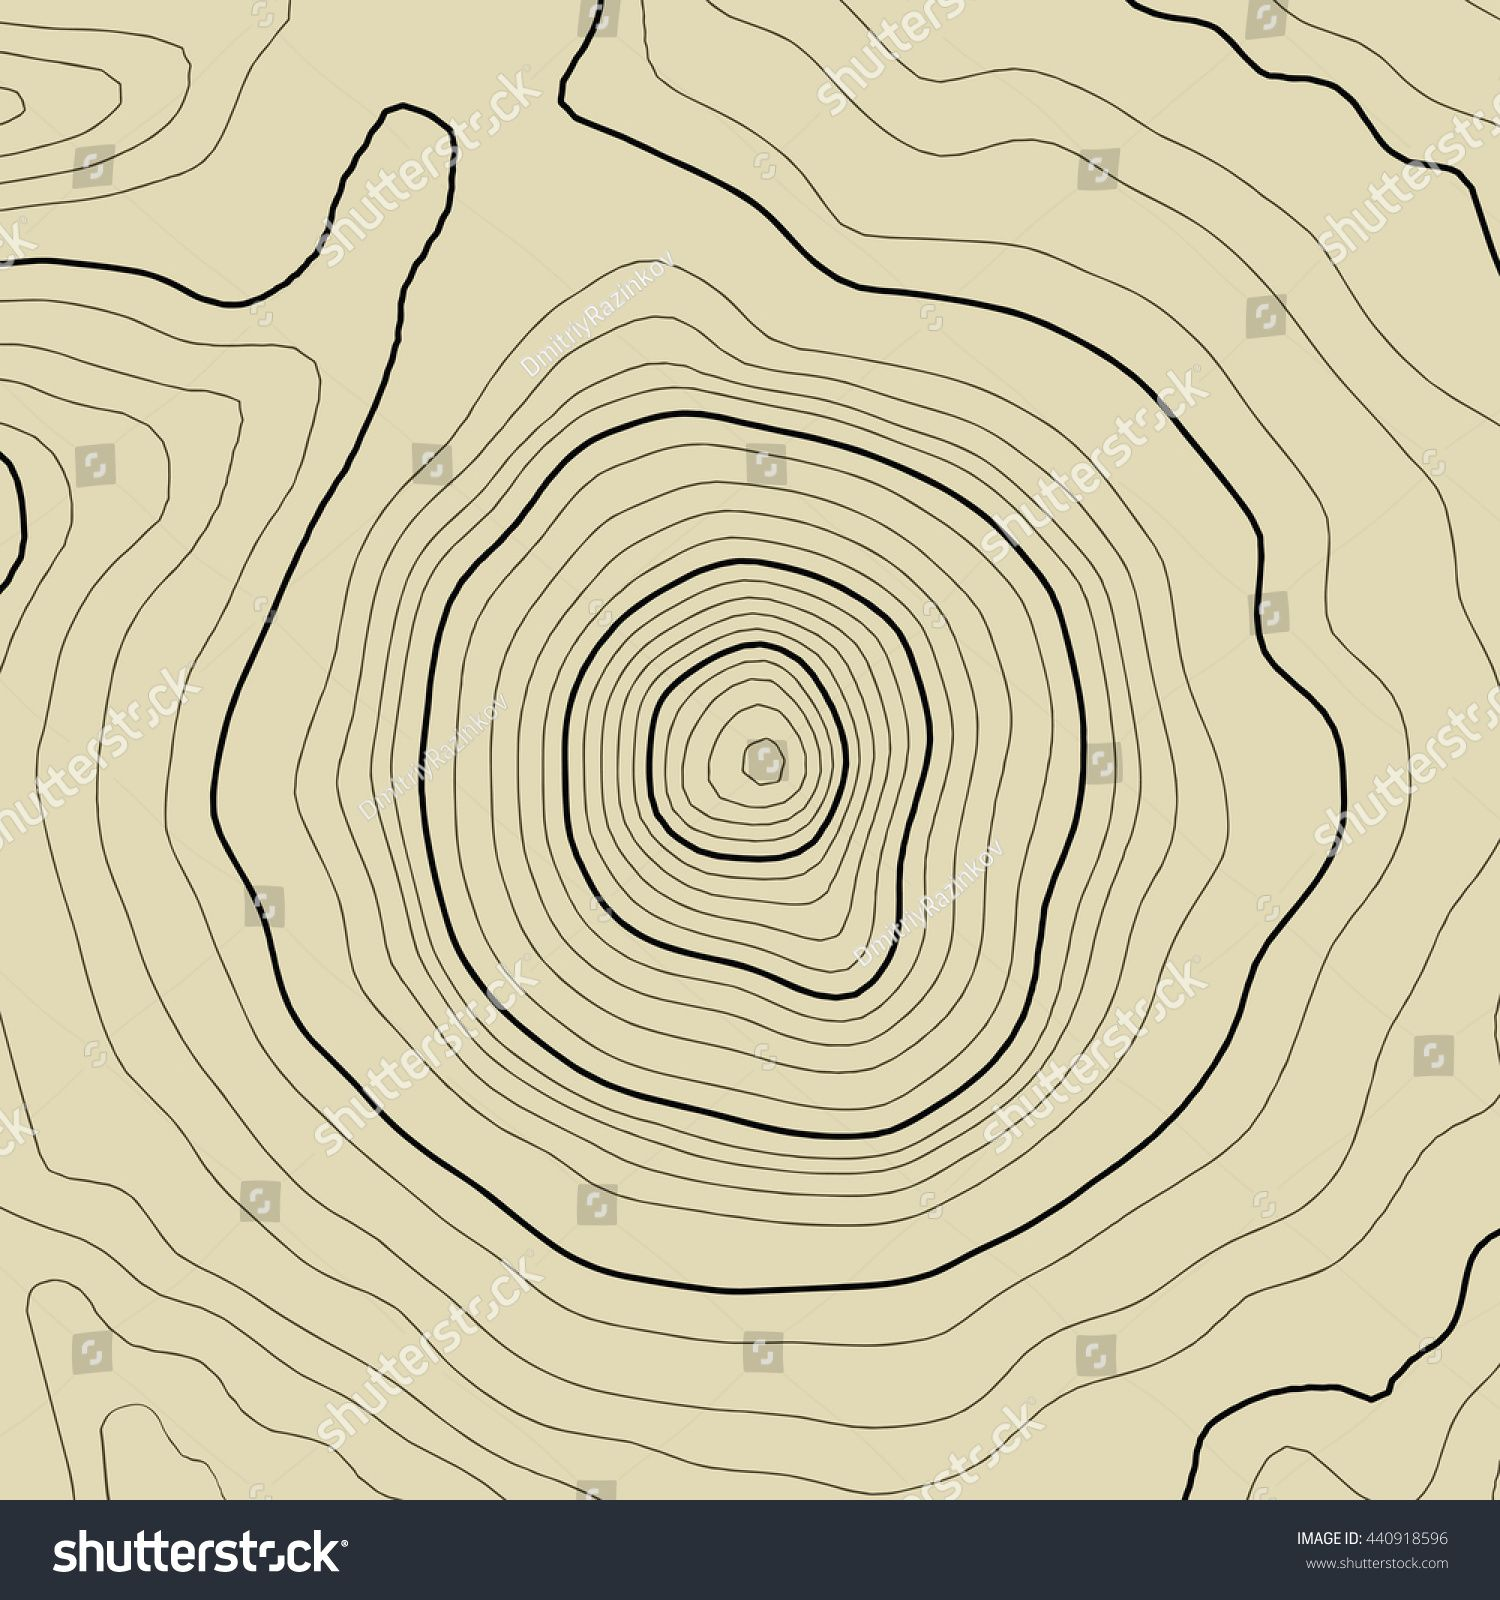 Image Result For Topographical Art With Images